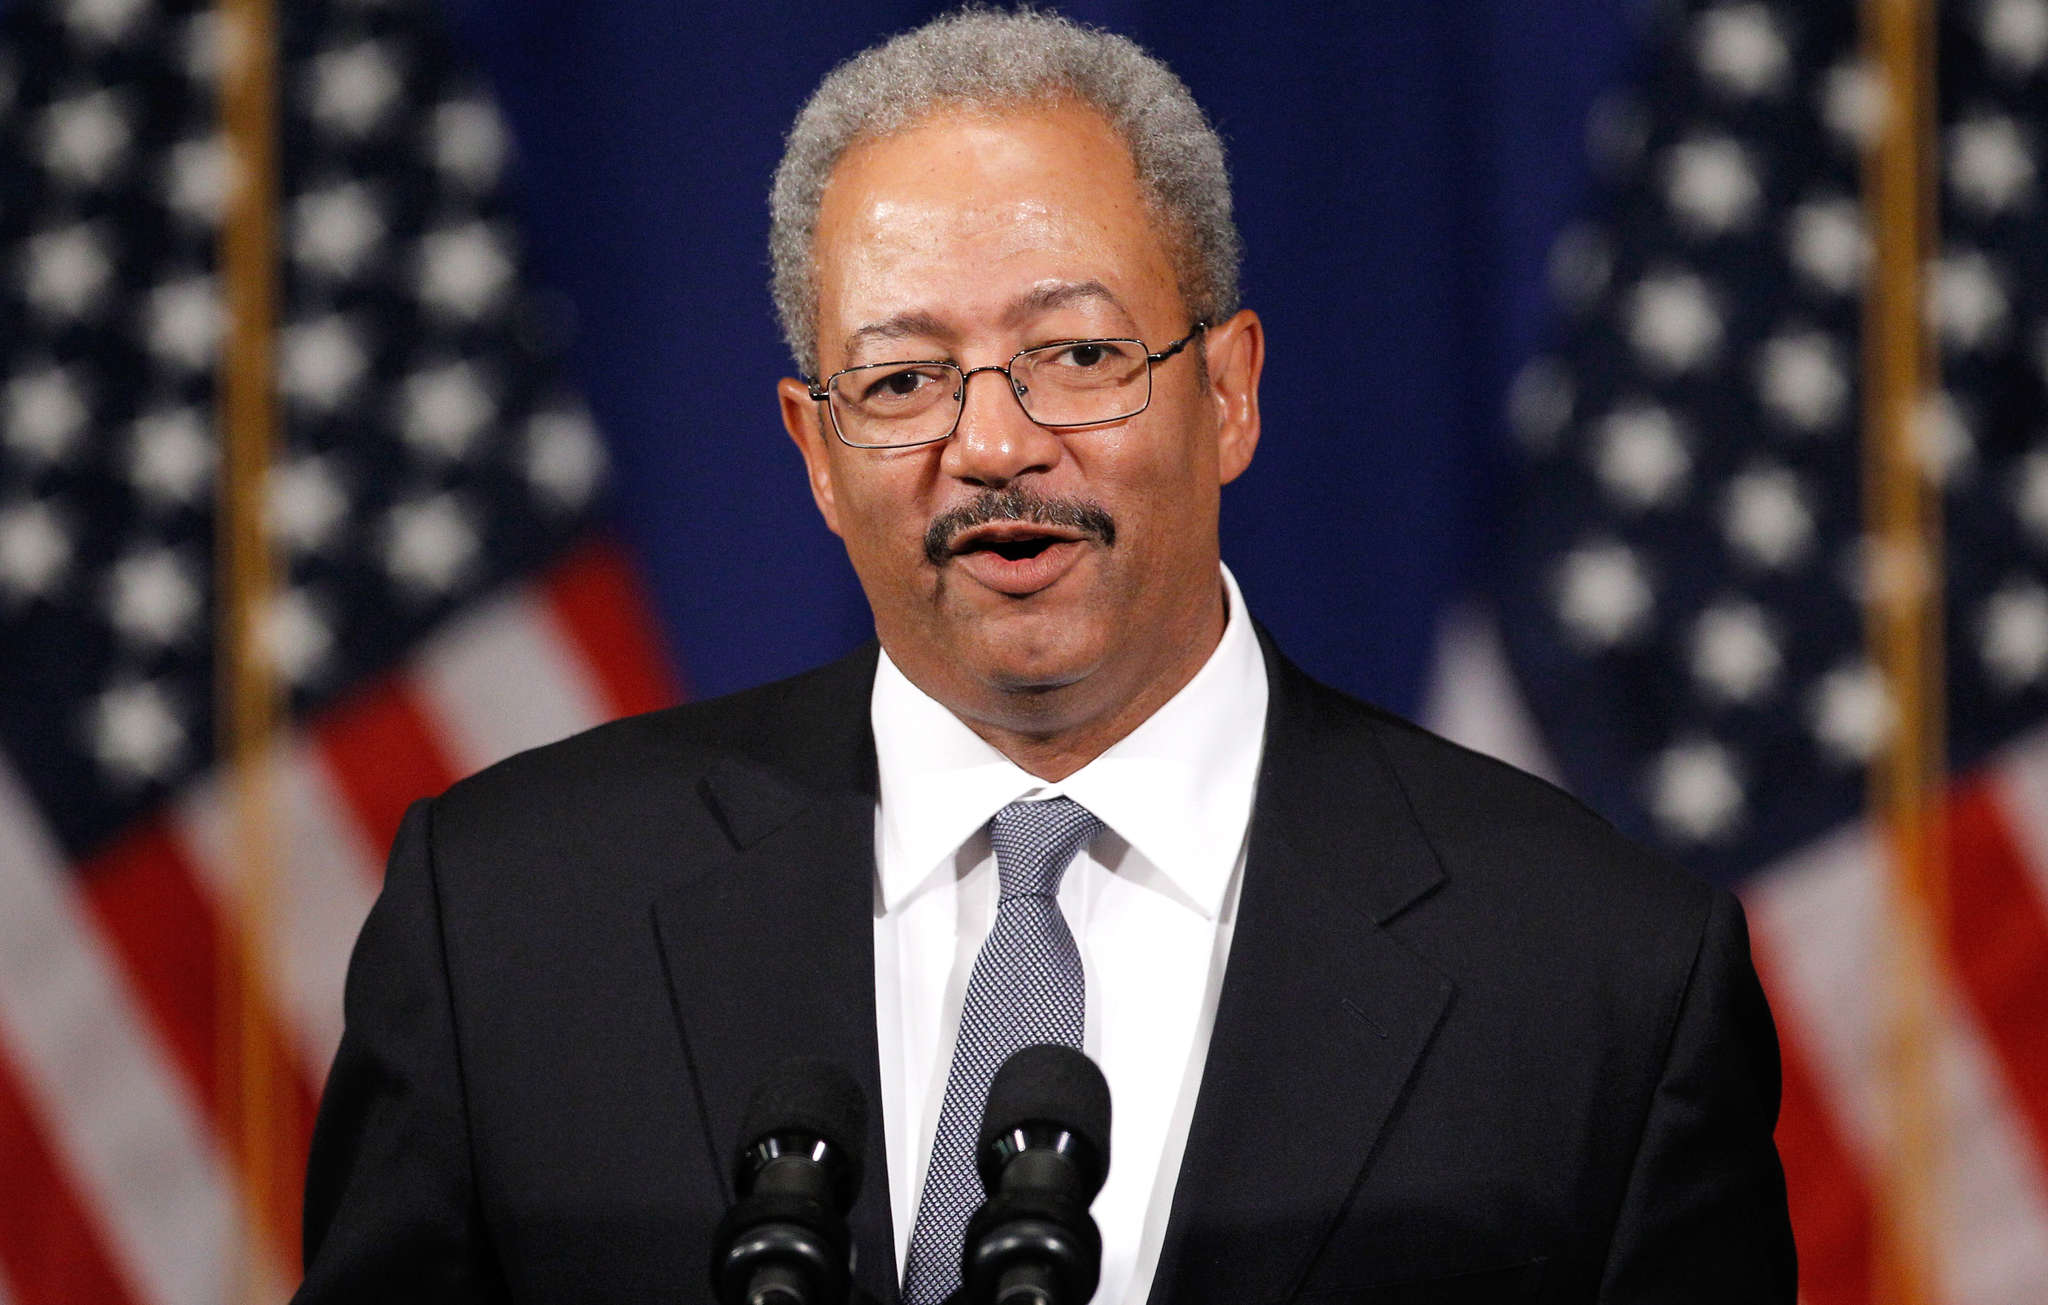 Chaka Fattah´s legal team relied on a recent decision concerning Virginia, in which a former governor´s conviction was vacated by the U.S. Supreme Court.